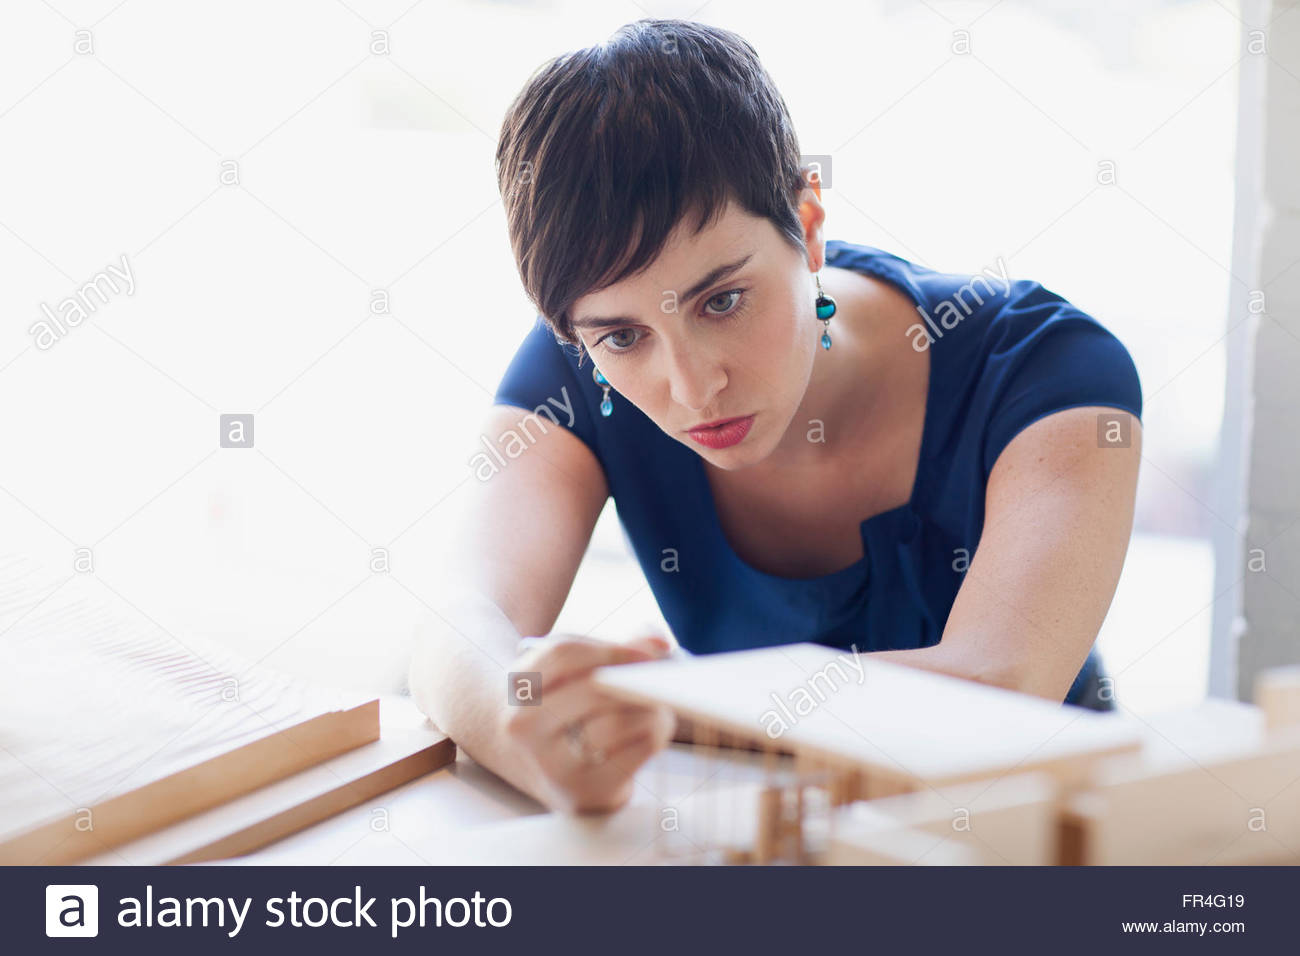 stylish young woman looking at architectural model - Stock Image